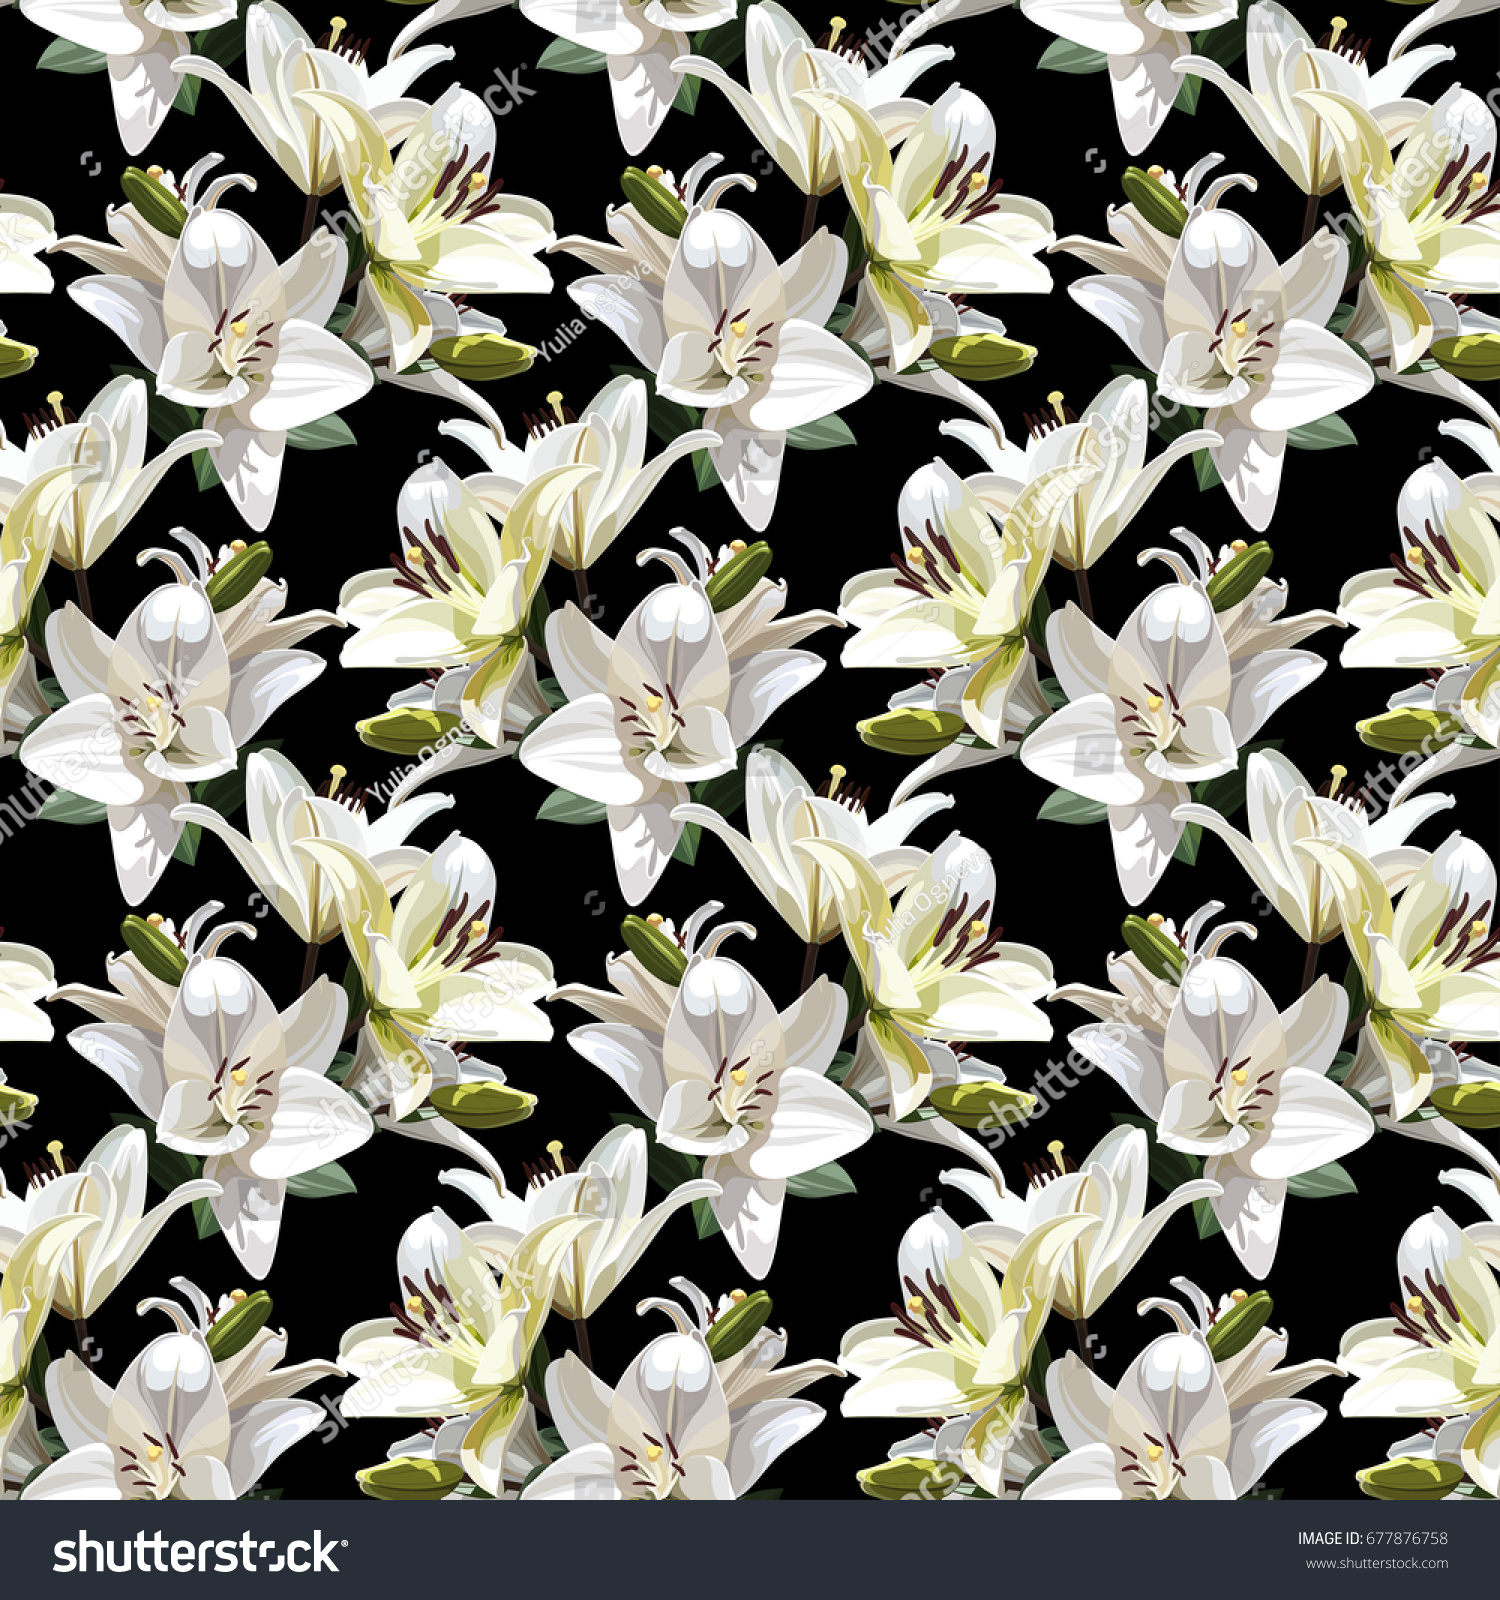 White flowers lily madonna lily seamless stock vector royalty free white flowers of lily madonna lily seamless floral pattern on black background izmirmasajfo